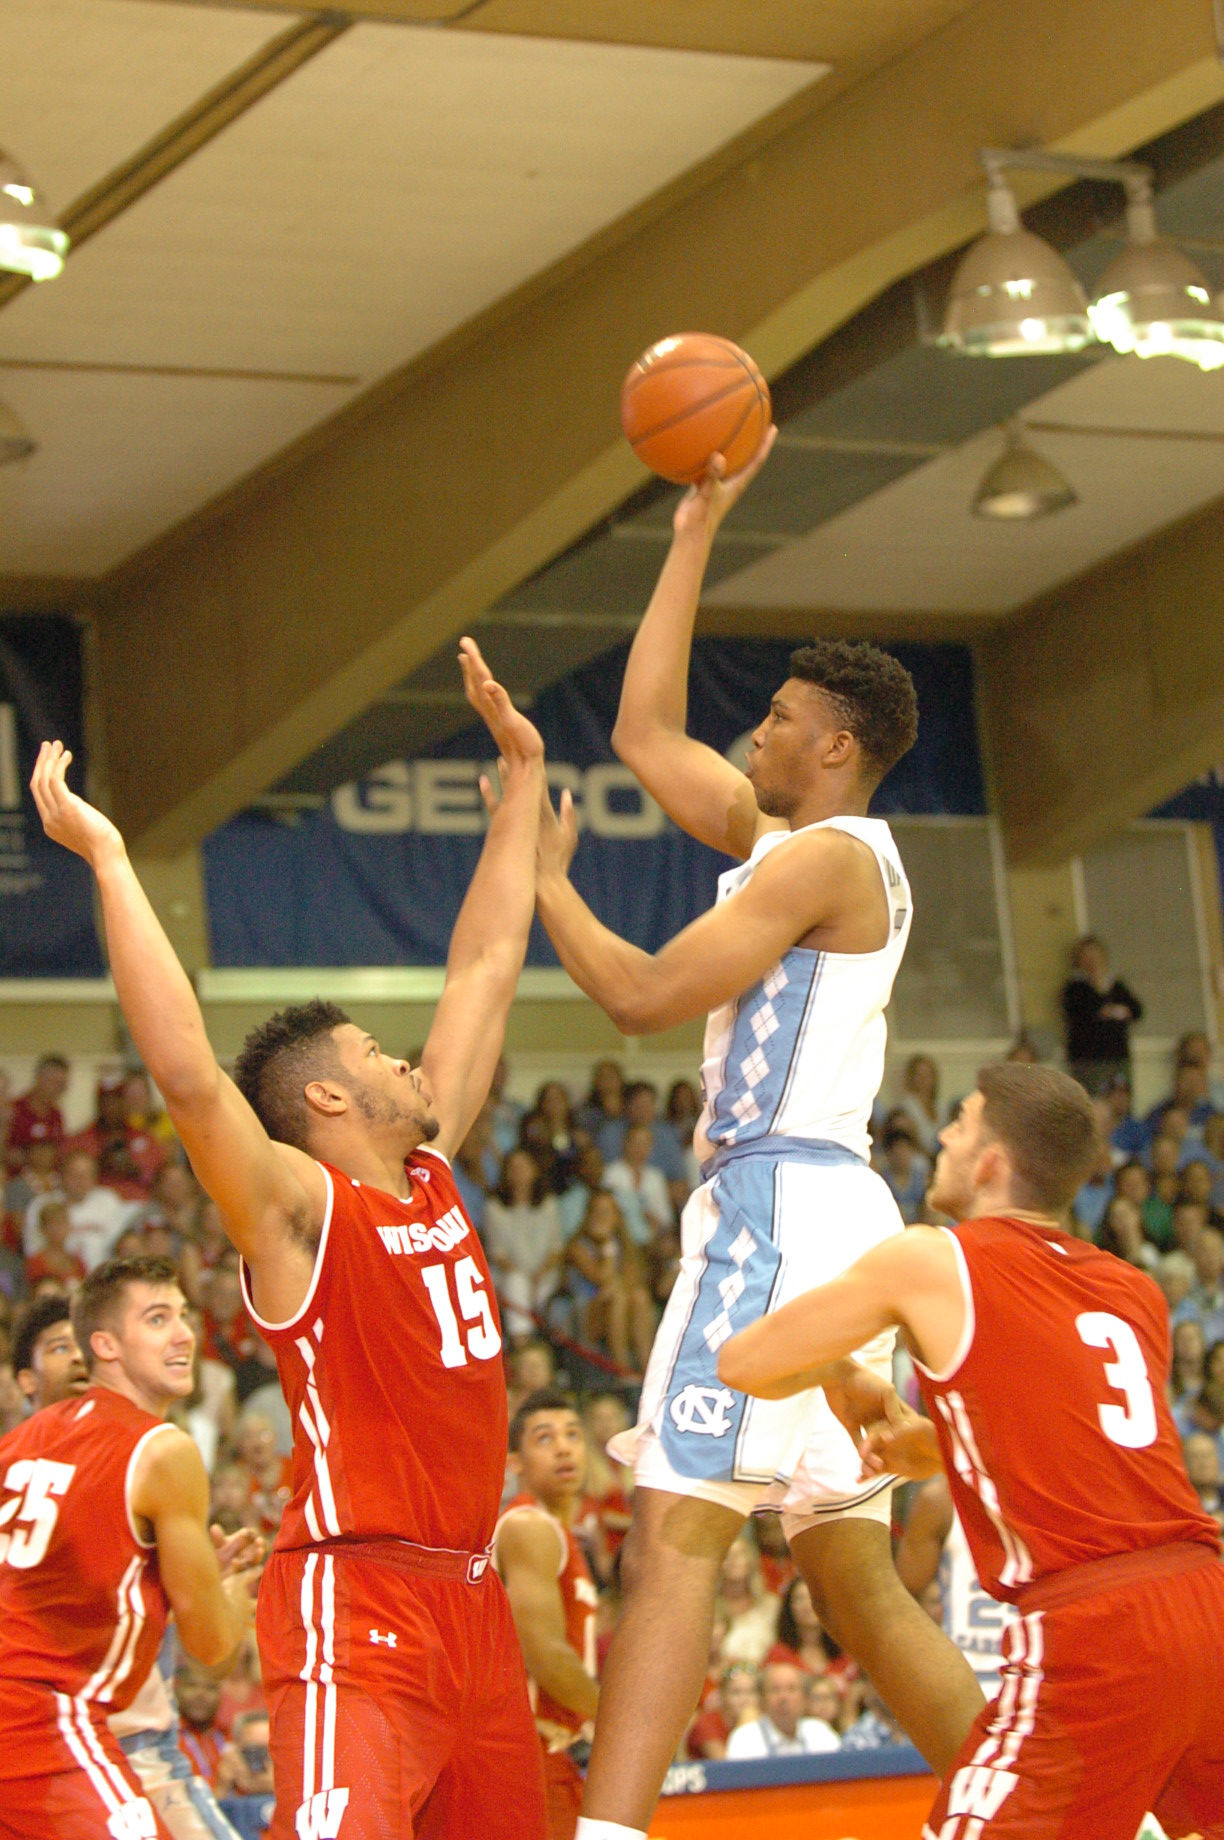 UNC #5 Tony Bradley. Championship game between UW vs UNC at the 2016 Maui Jim Maui Invitational. PC: Joel B. Tamayo.